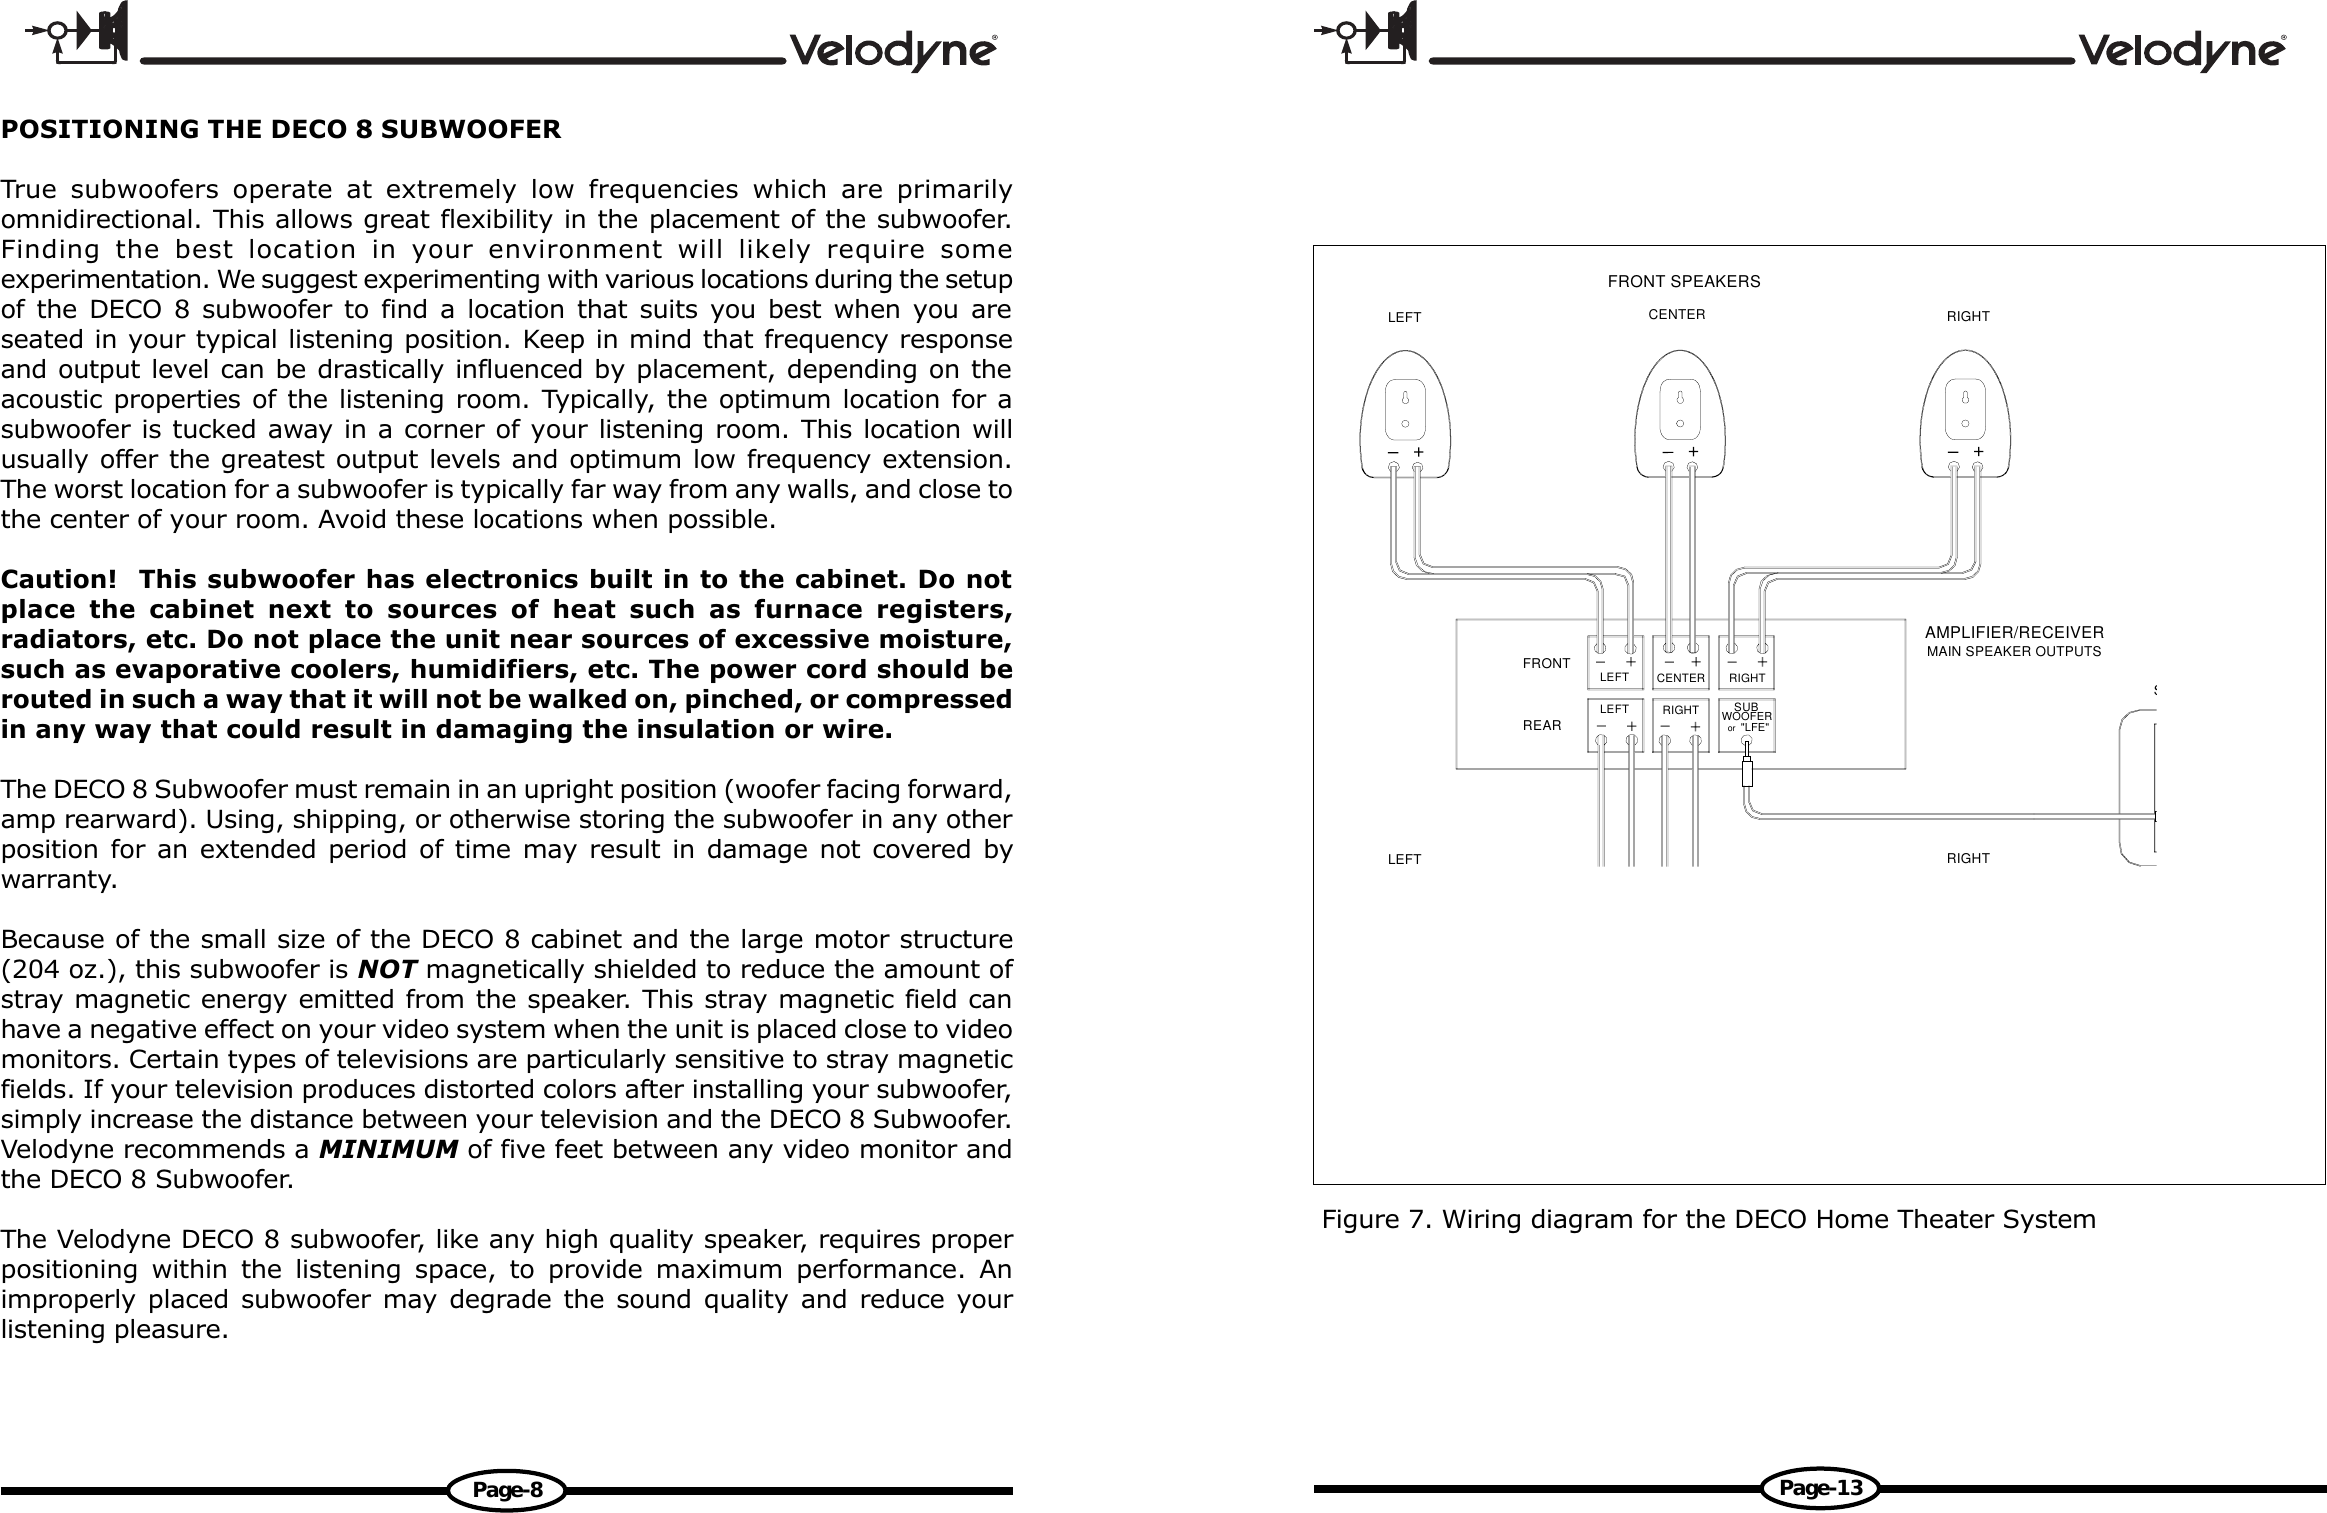 Velodyne Acoustics Deco Users Manual 63deco8cp65 Subwoofer Wiring 4 Ohm Diagram Speaker Cabi Page 10 Of 12